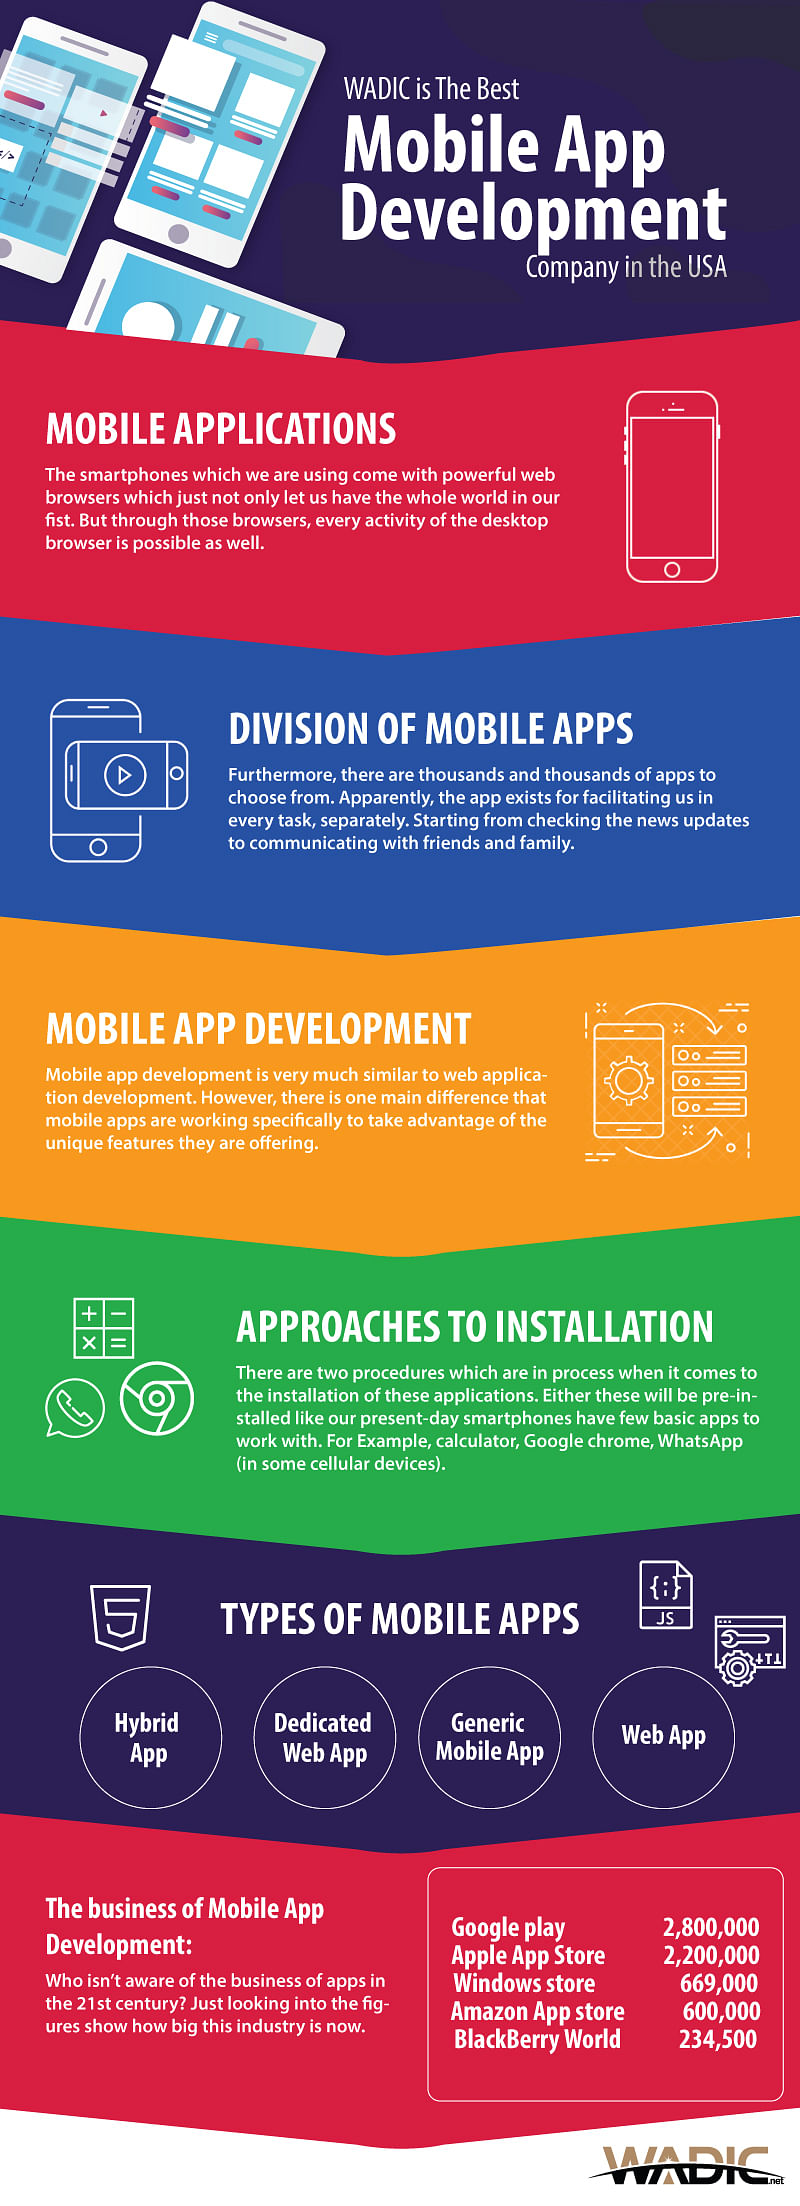 mobile application companies in usa